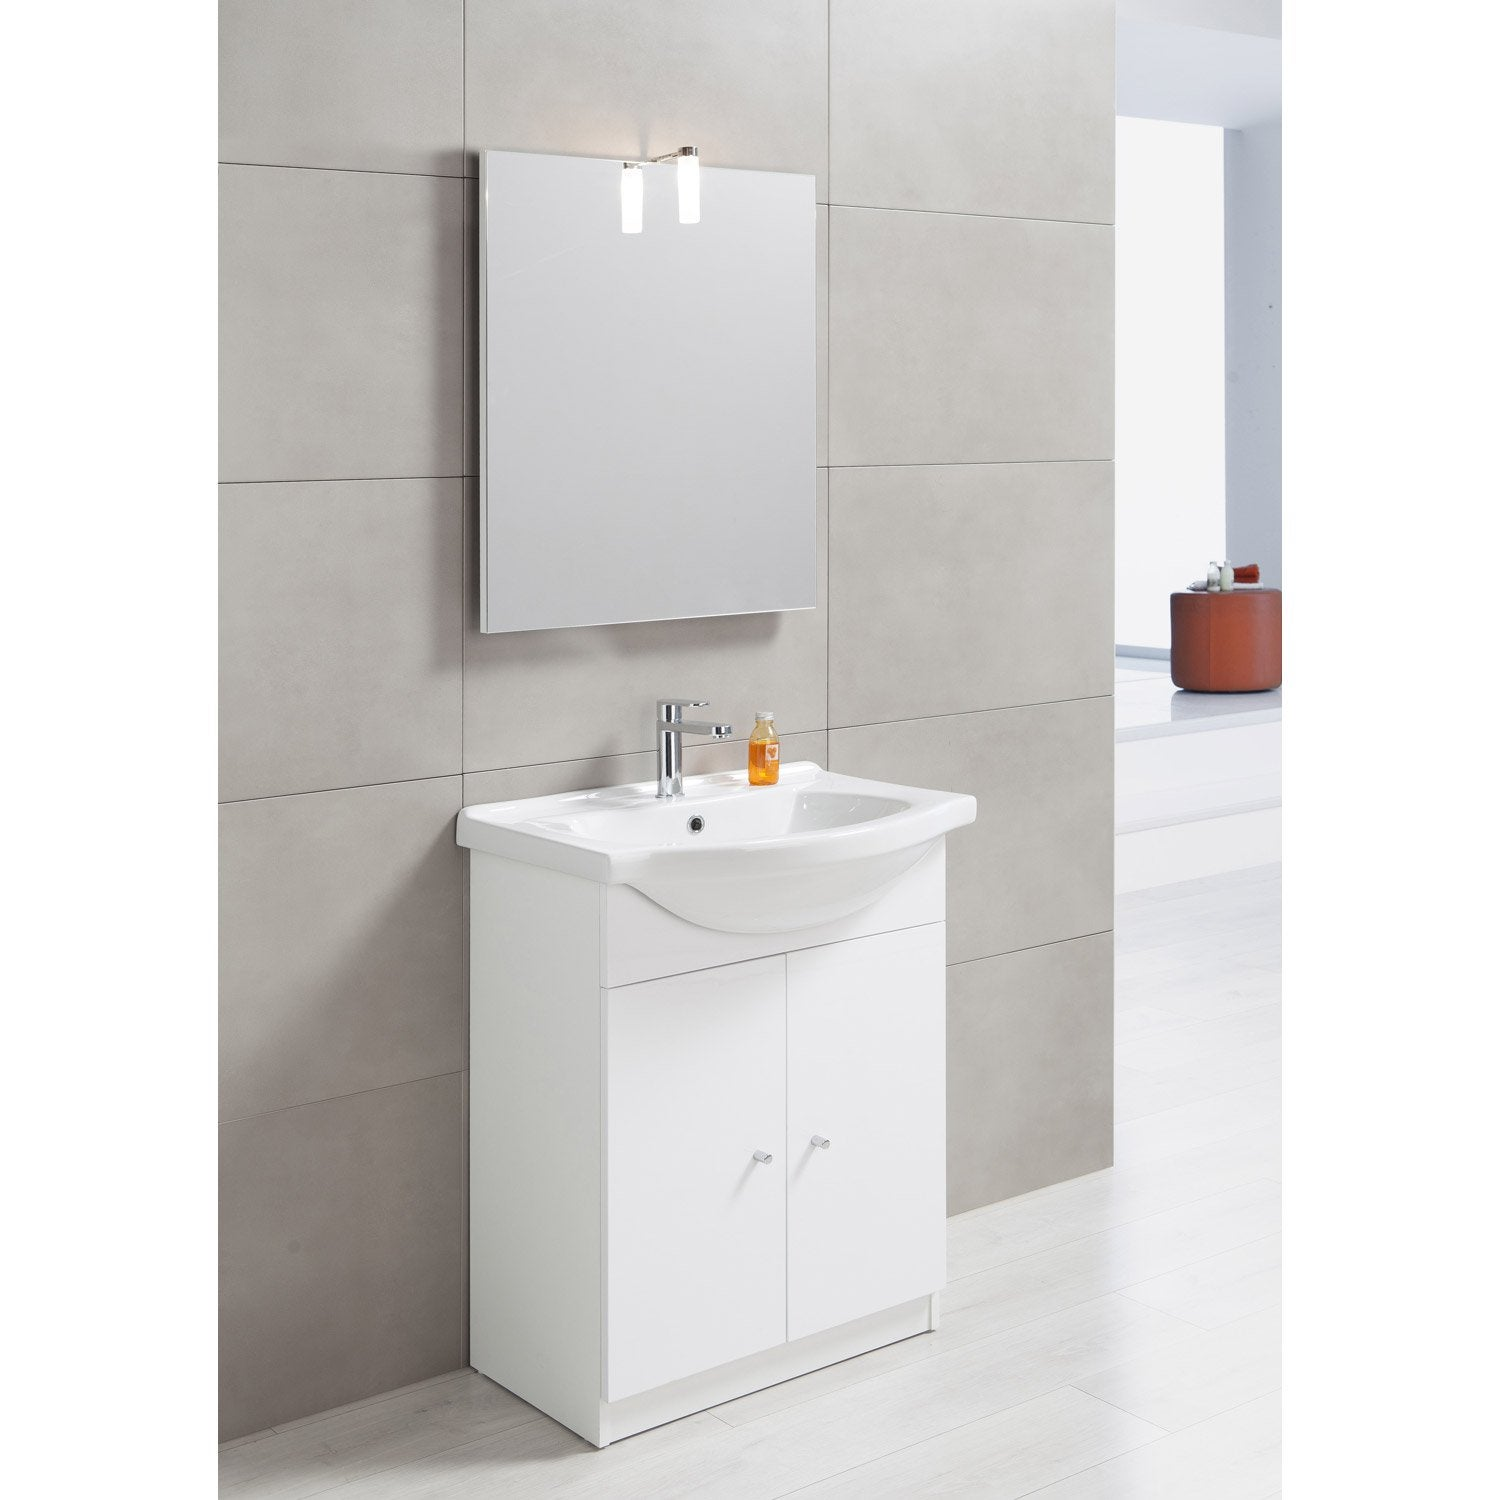 Meuble vasque 65 cm bianca leroy merlin - Meuble toilette castorama ...